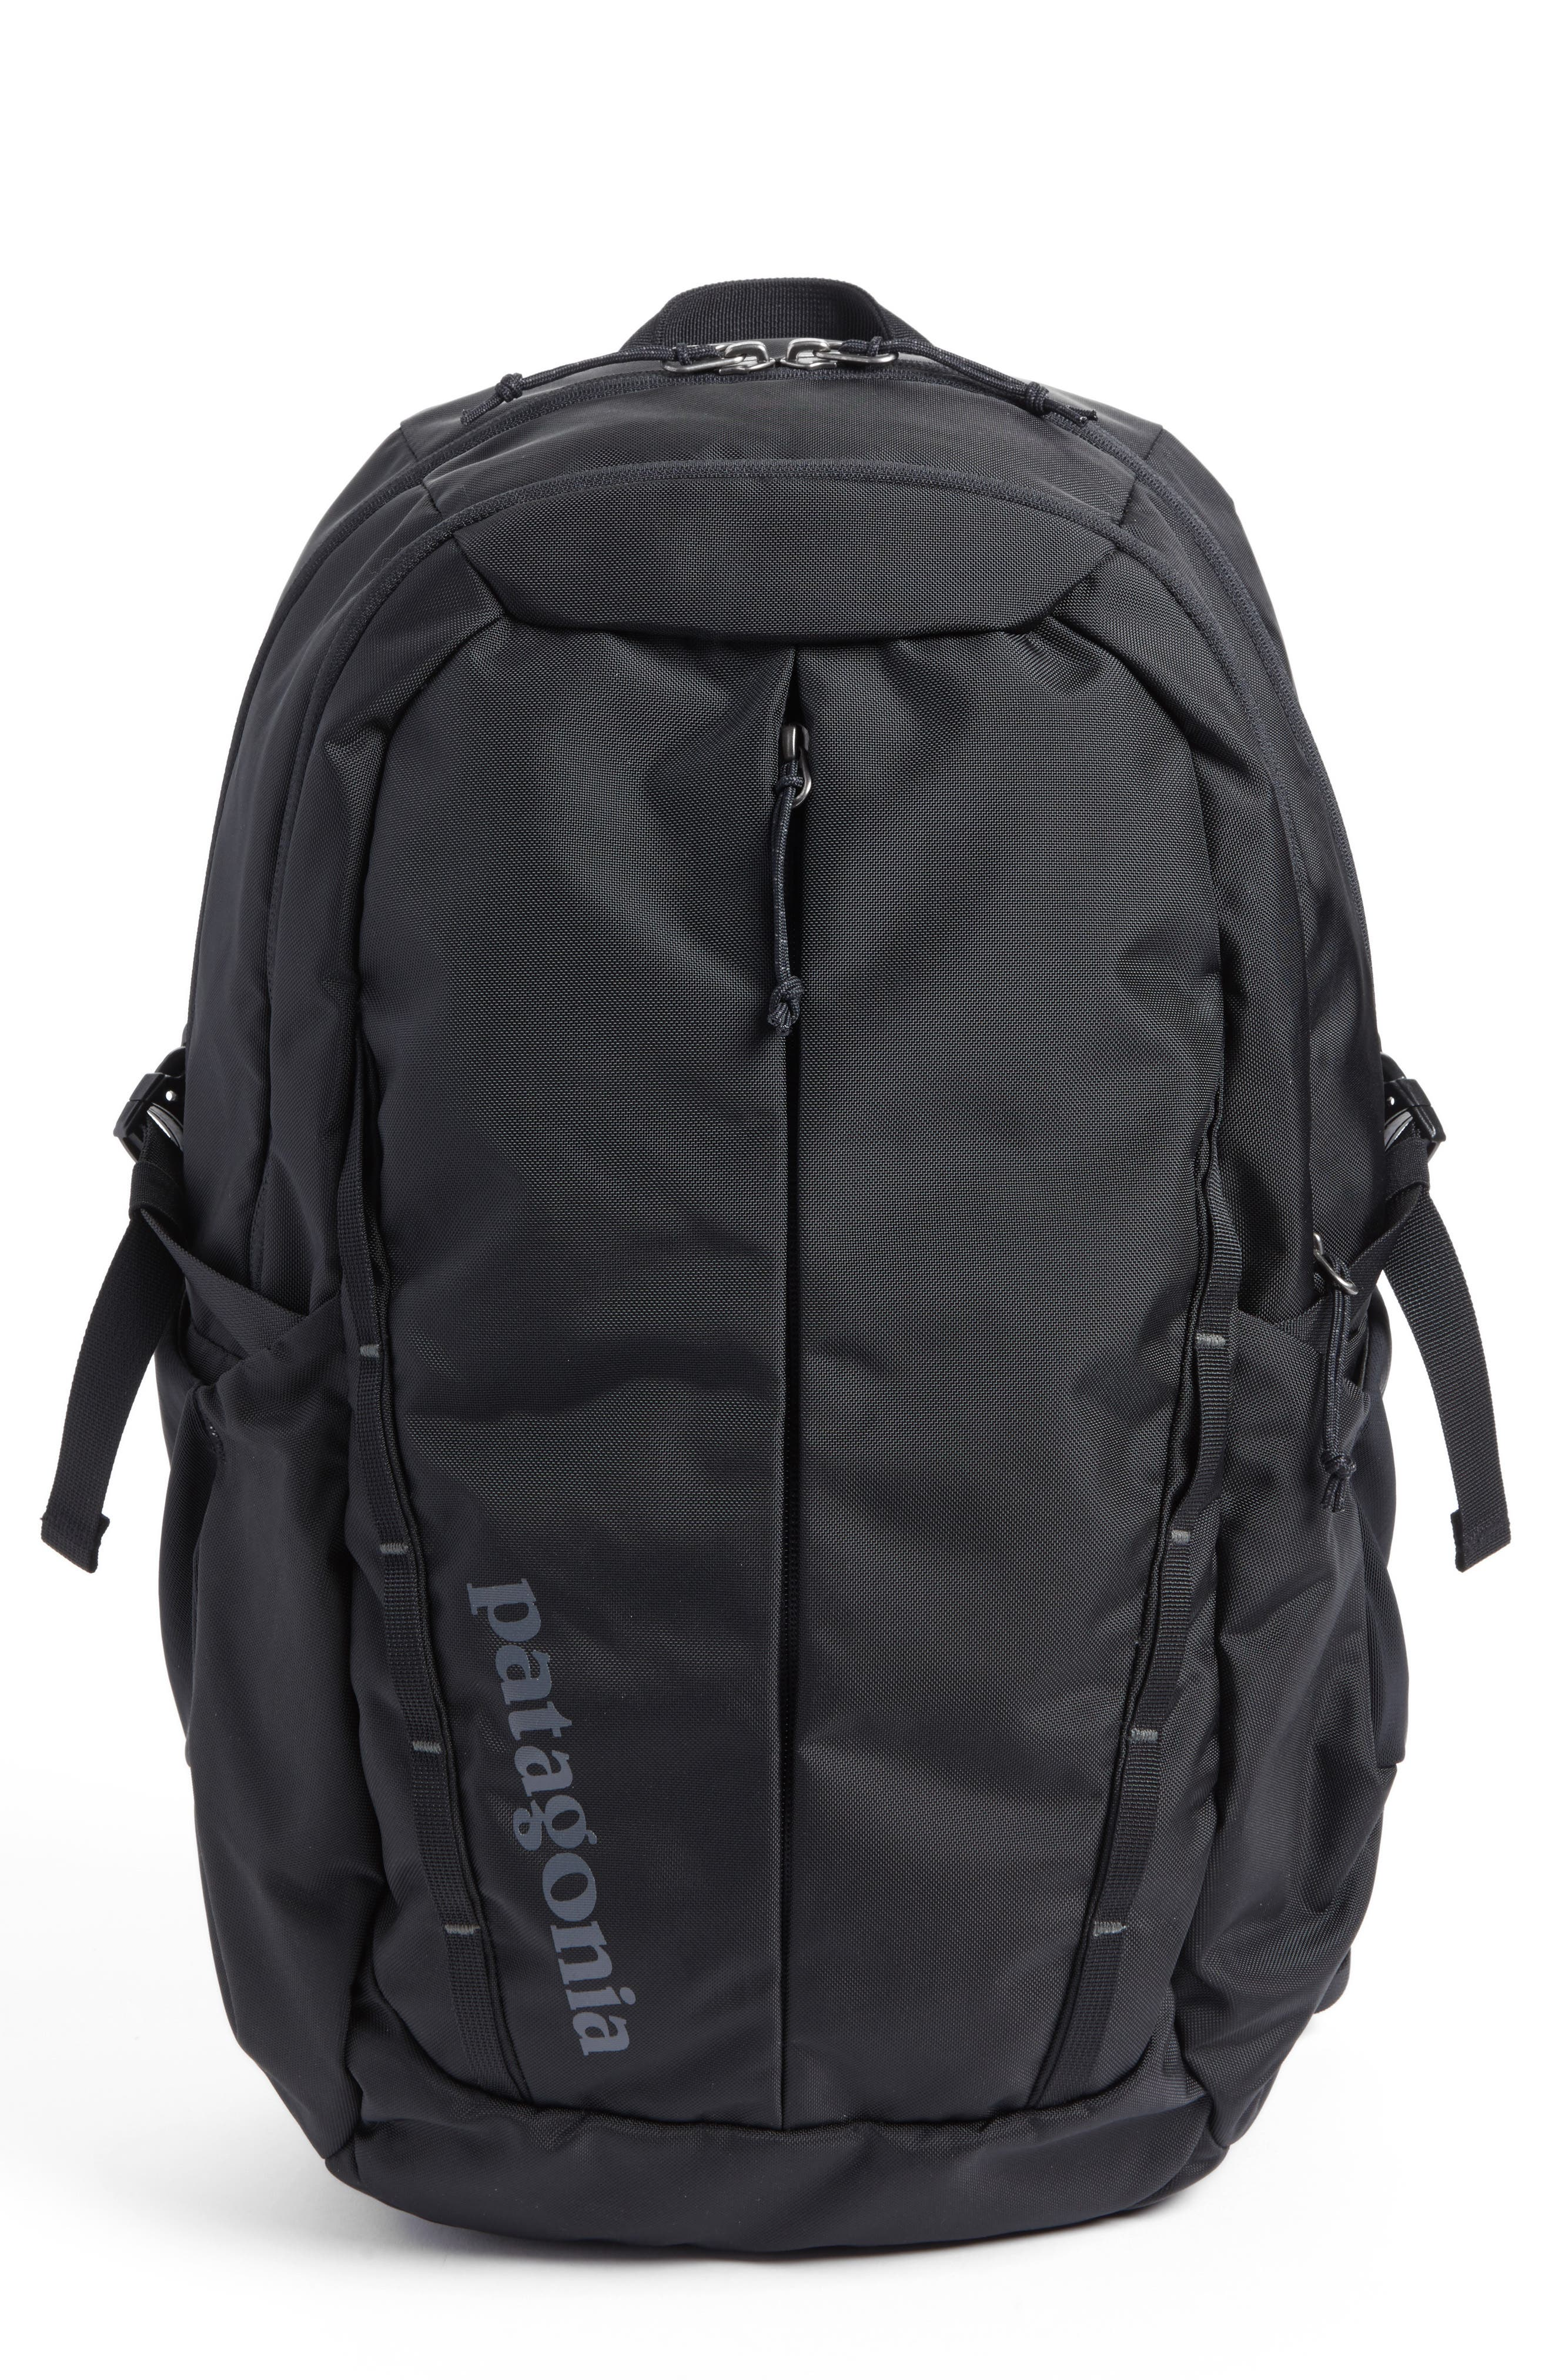 Refugio 26L Backpack,                             Main thumbnail 1, color,                             Black